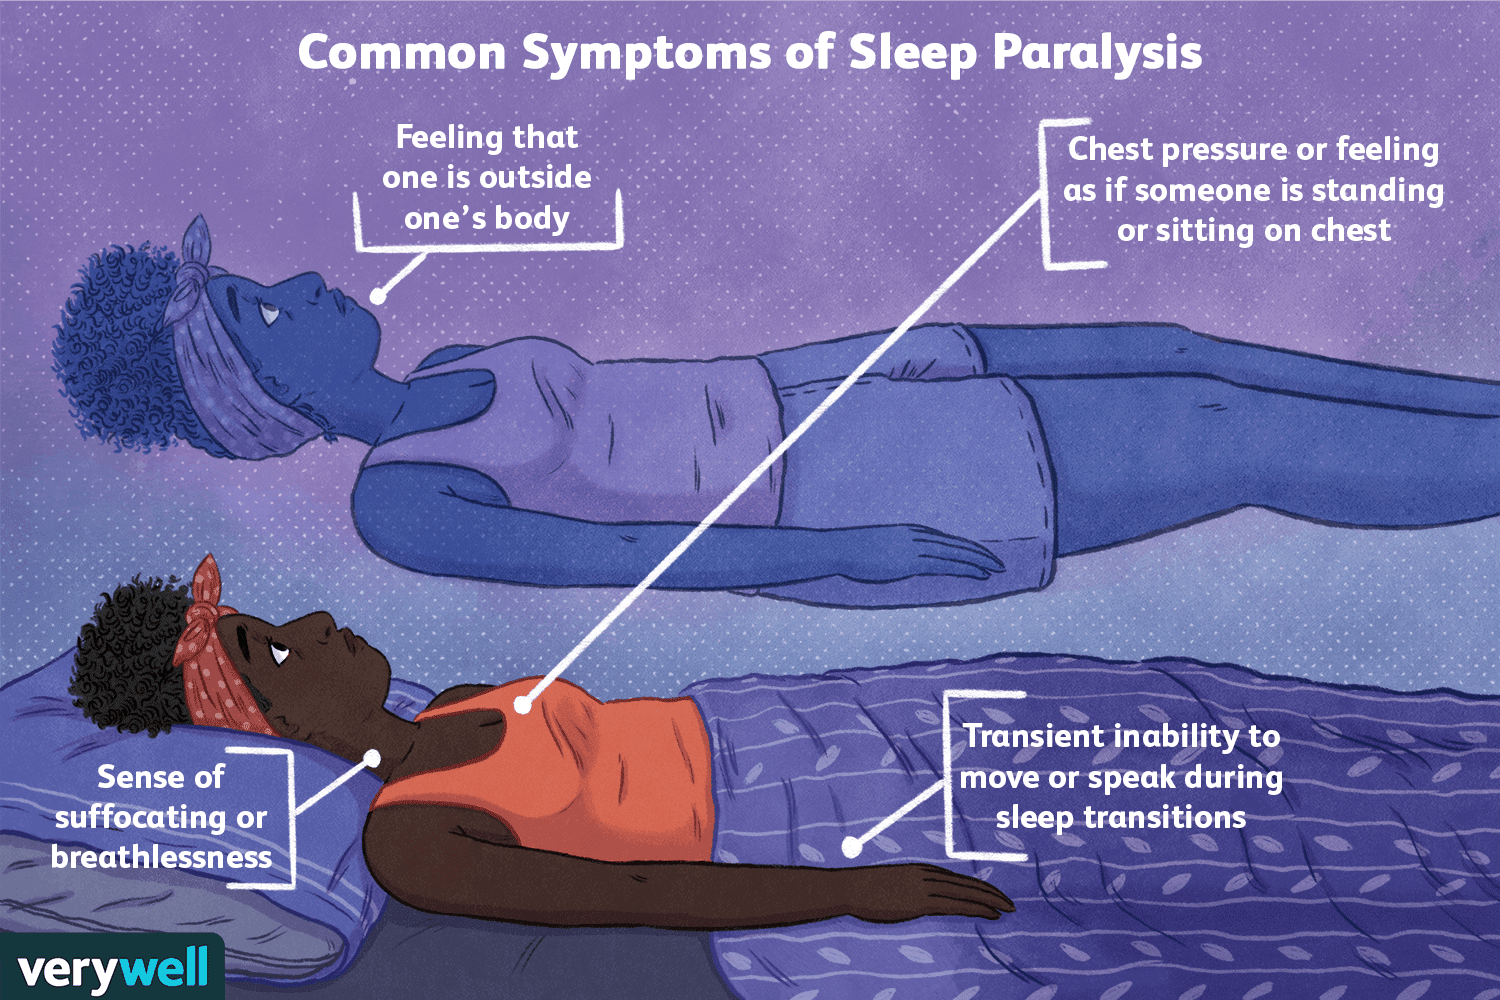 What Are The Common Scary Symptoms Of Sleep Paralysis